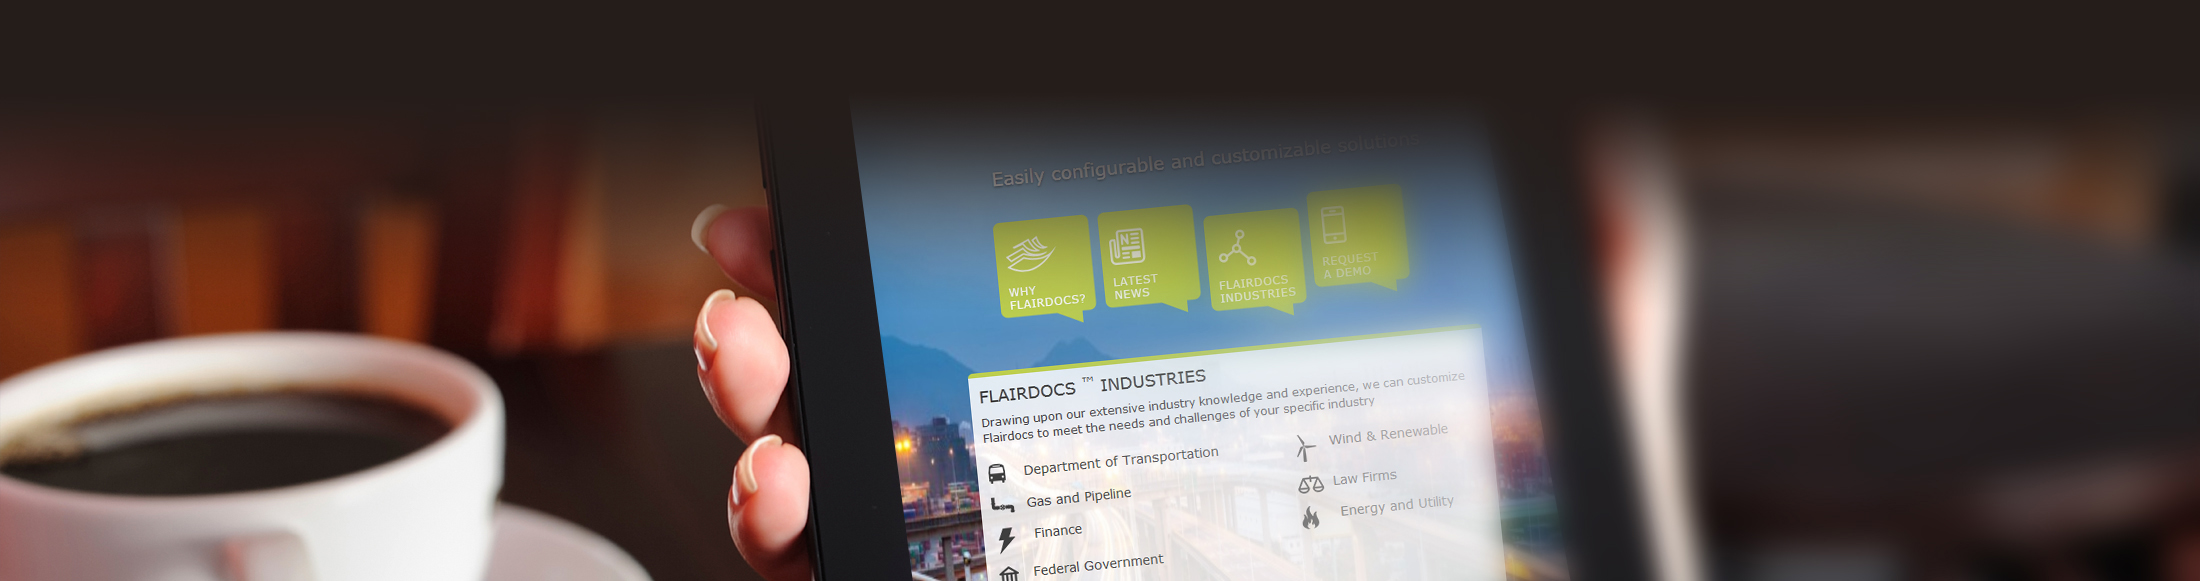 Get all news and updates of Flairdocs - Right of way management, property management